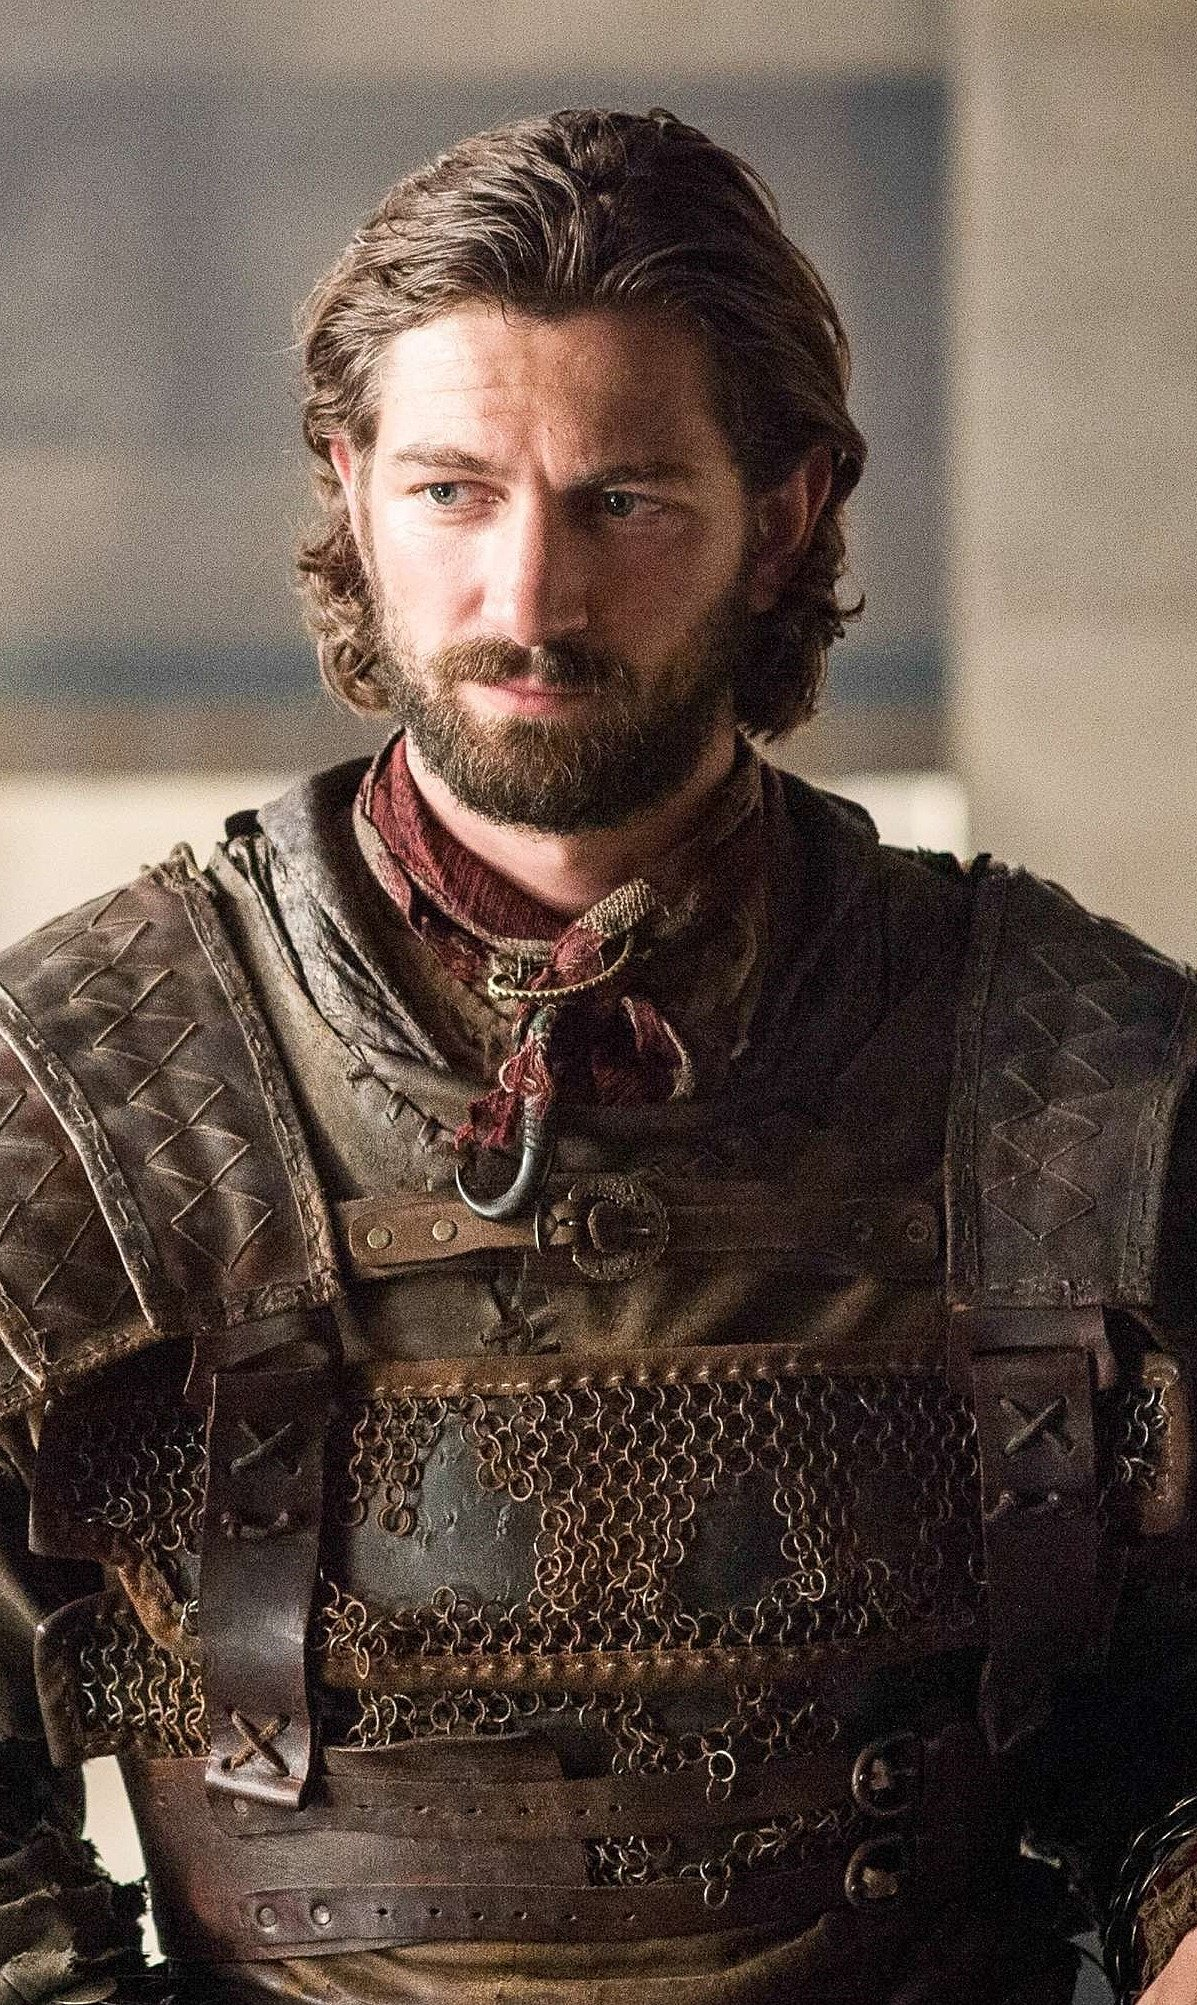 Daario Naharis From Game of Thrones | 450 Pop Culture ... Daario Naharis